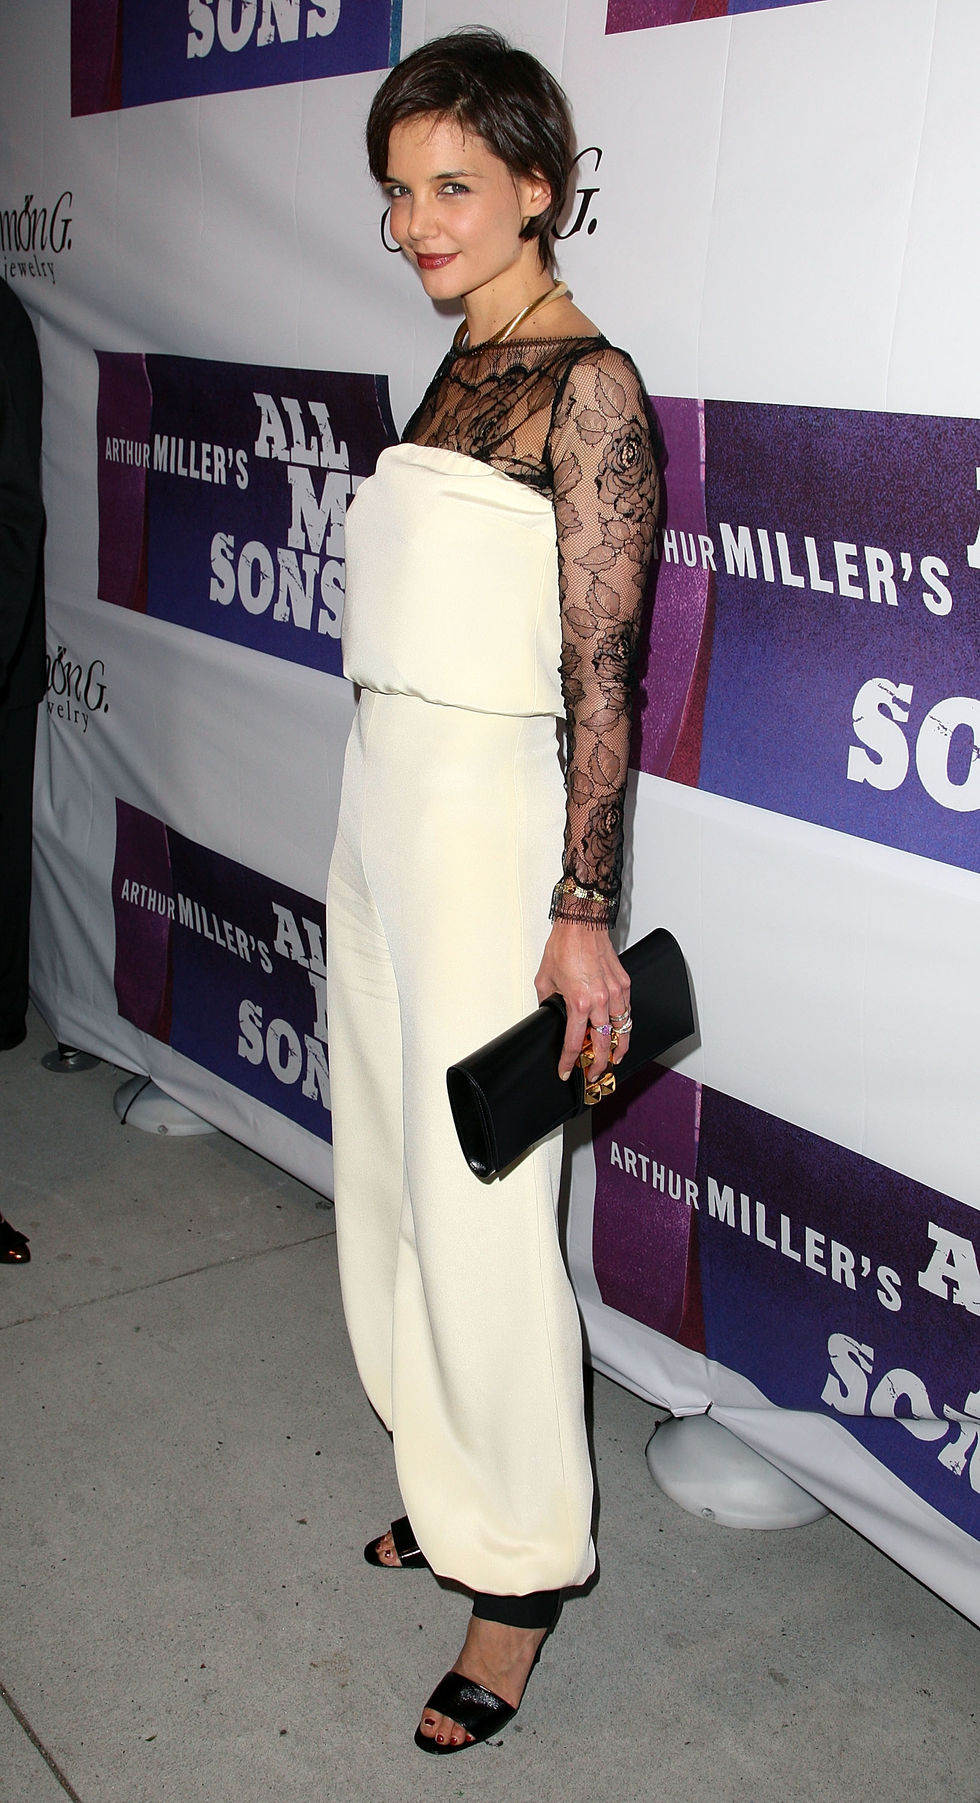 katie-holmes-all-my-sons-after-party-in-new-york-01